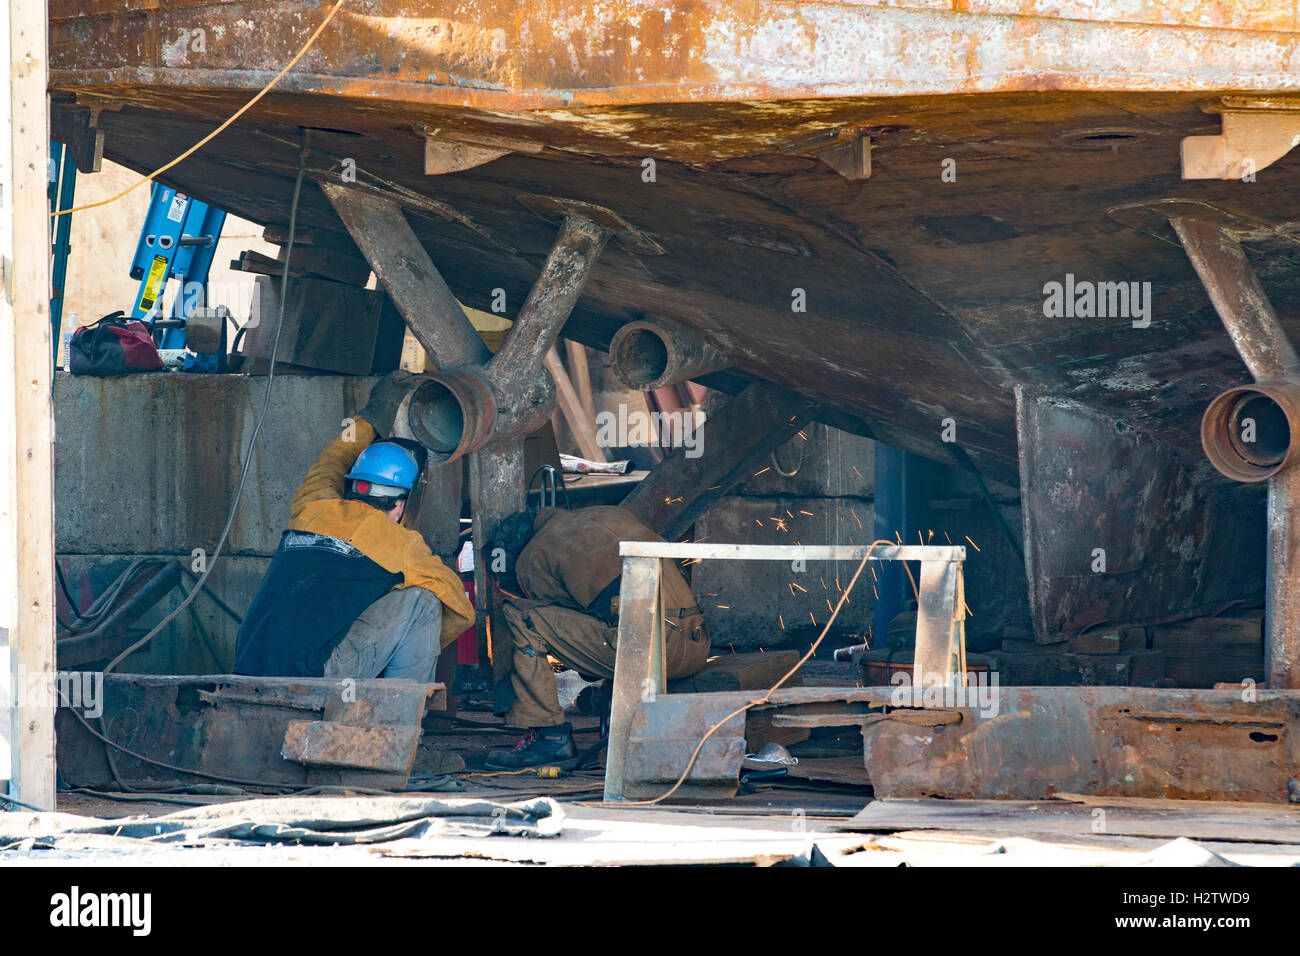 Steel boat, ship repair at dry dock by shipwright in Port Townsend boat yard. - Stock Image